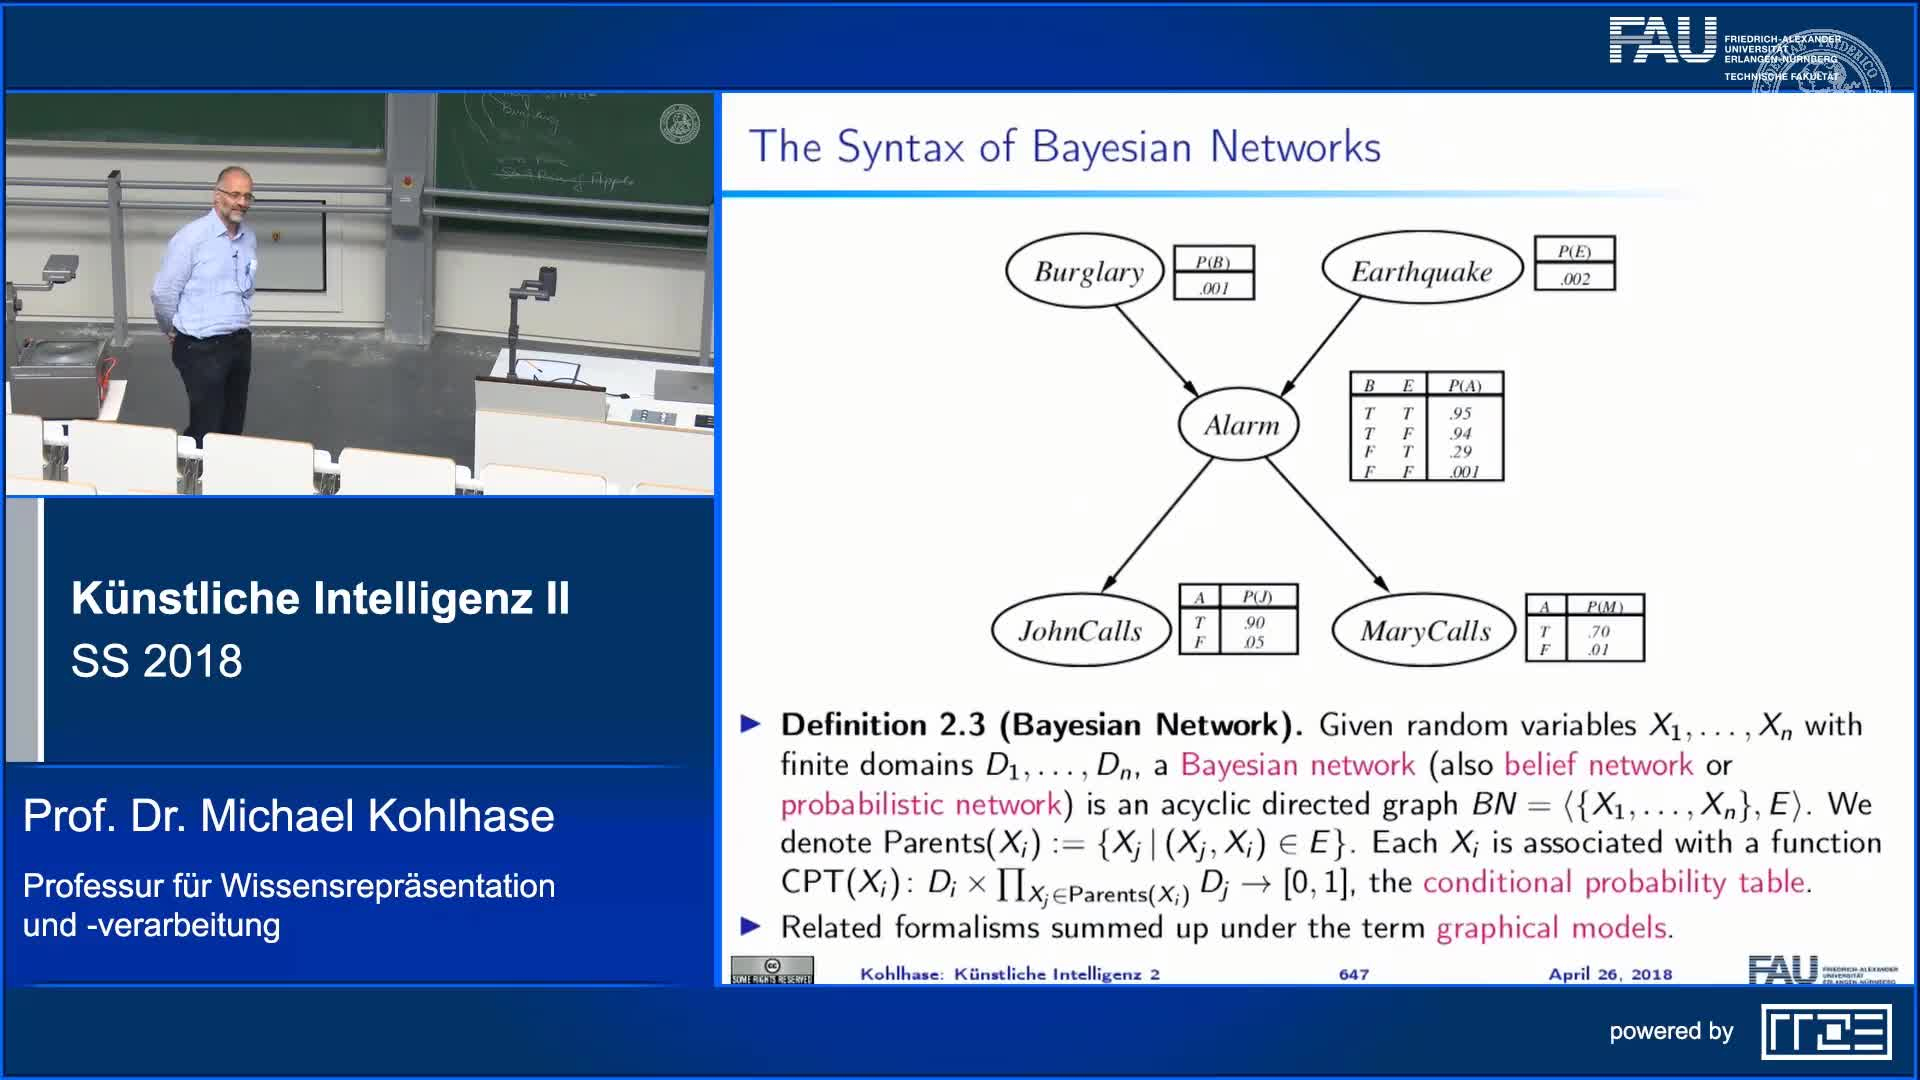 21.3. What is the Meaning of a Bayesian Network? preview image